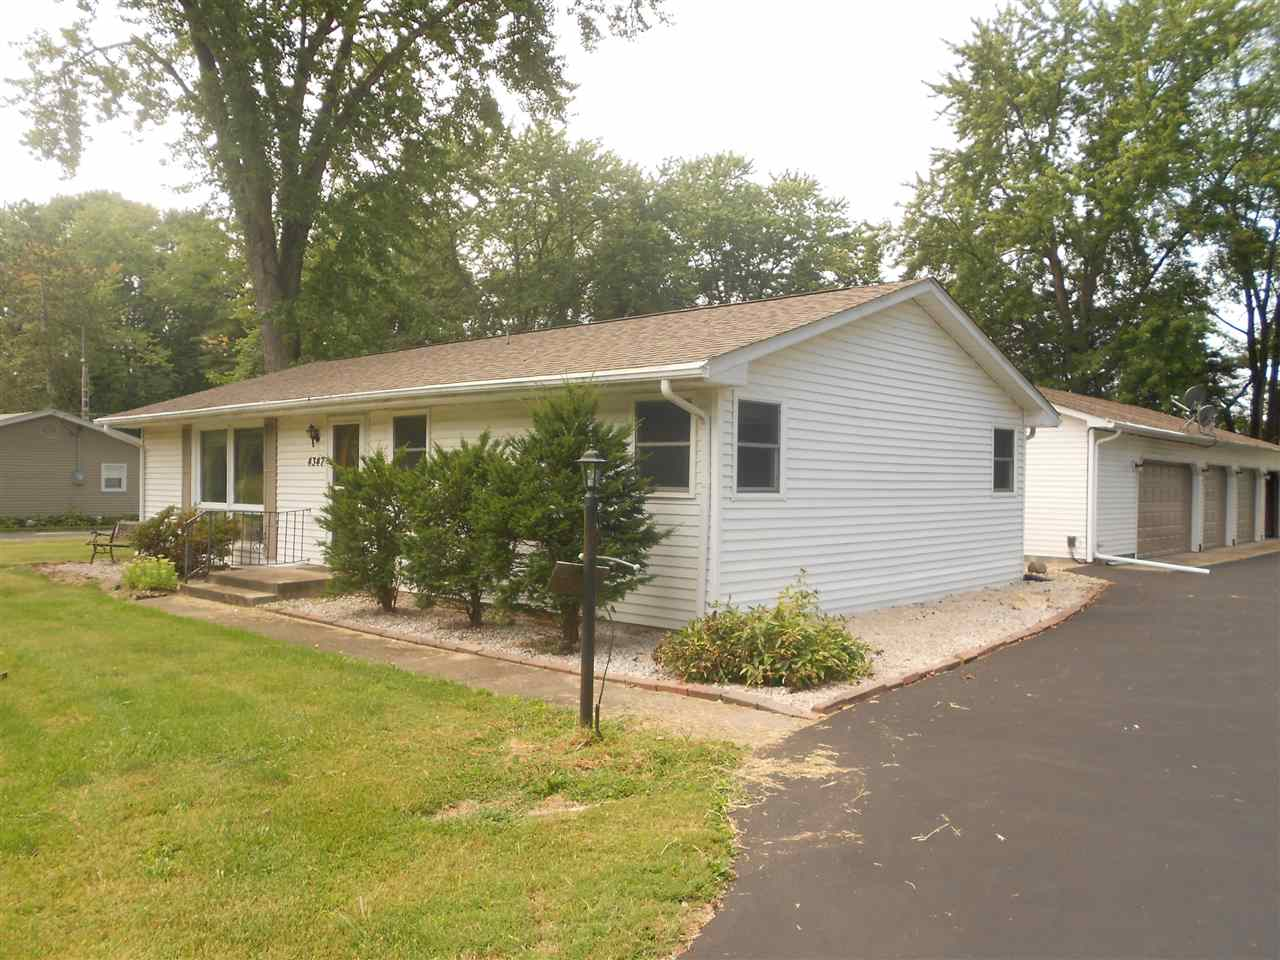 4347 Darwin Rd, WEST TERRE HAUTE, 47885, IN